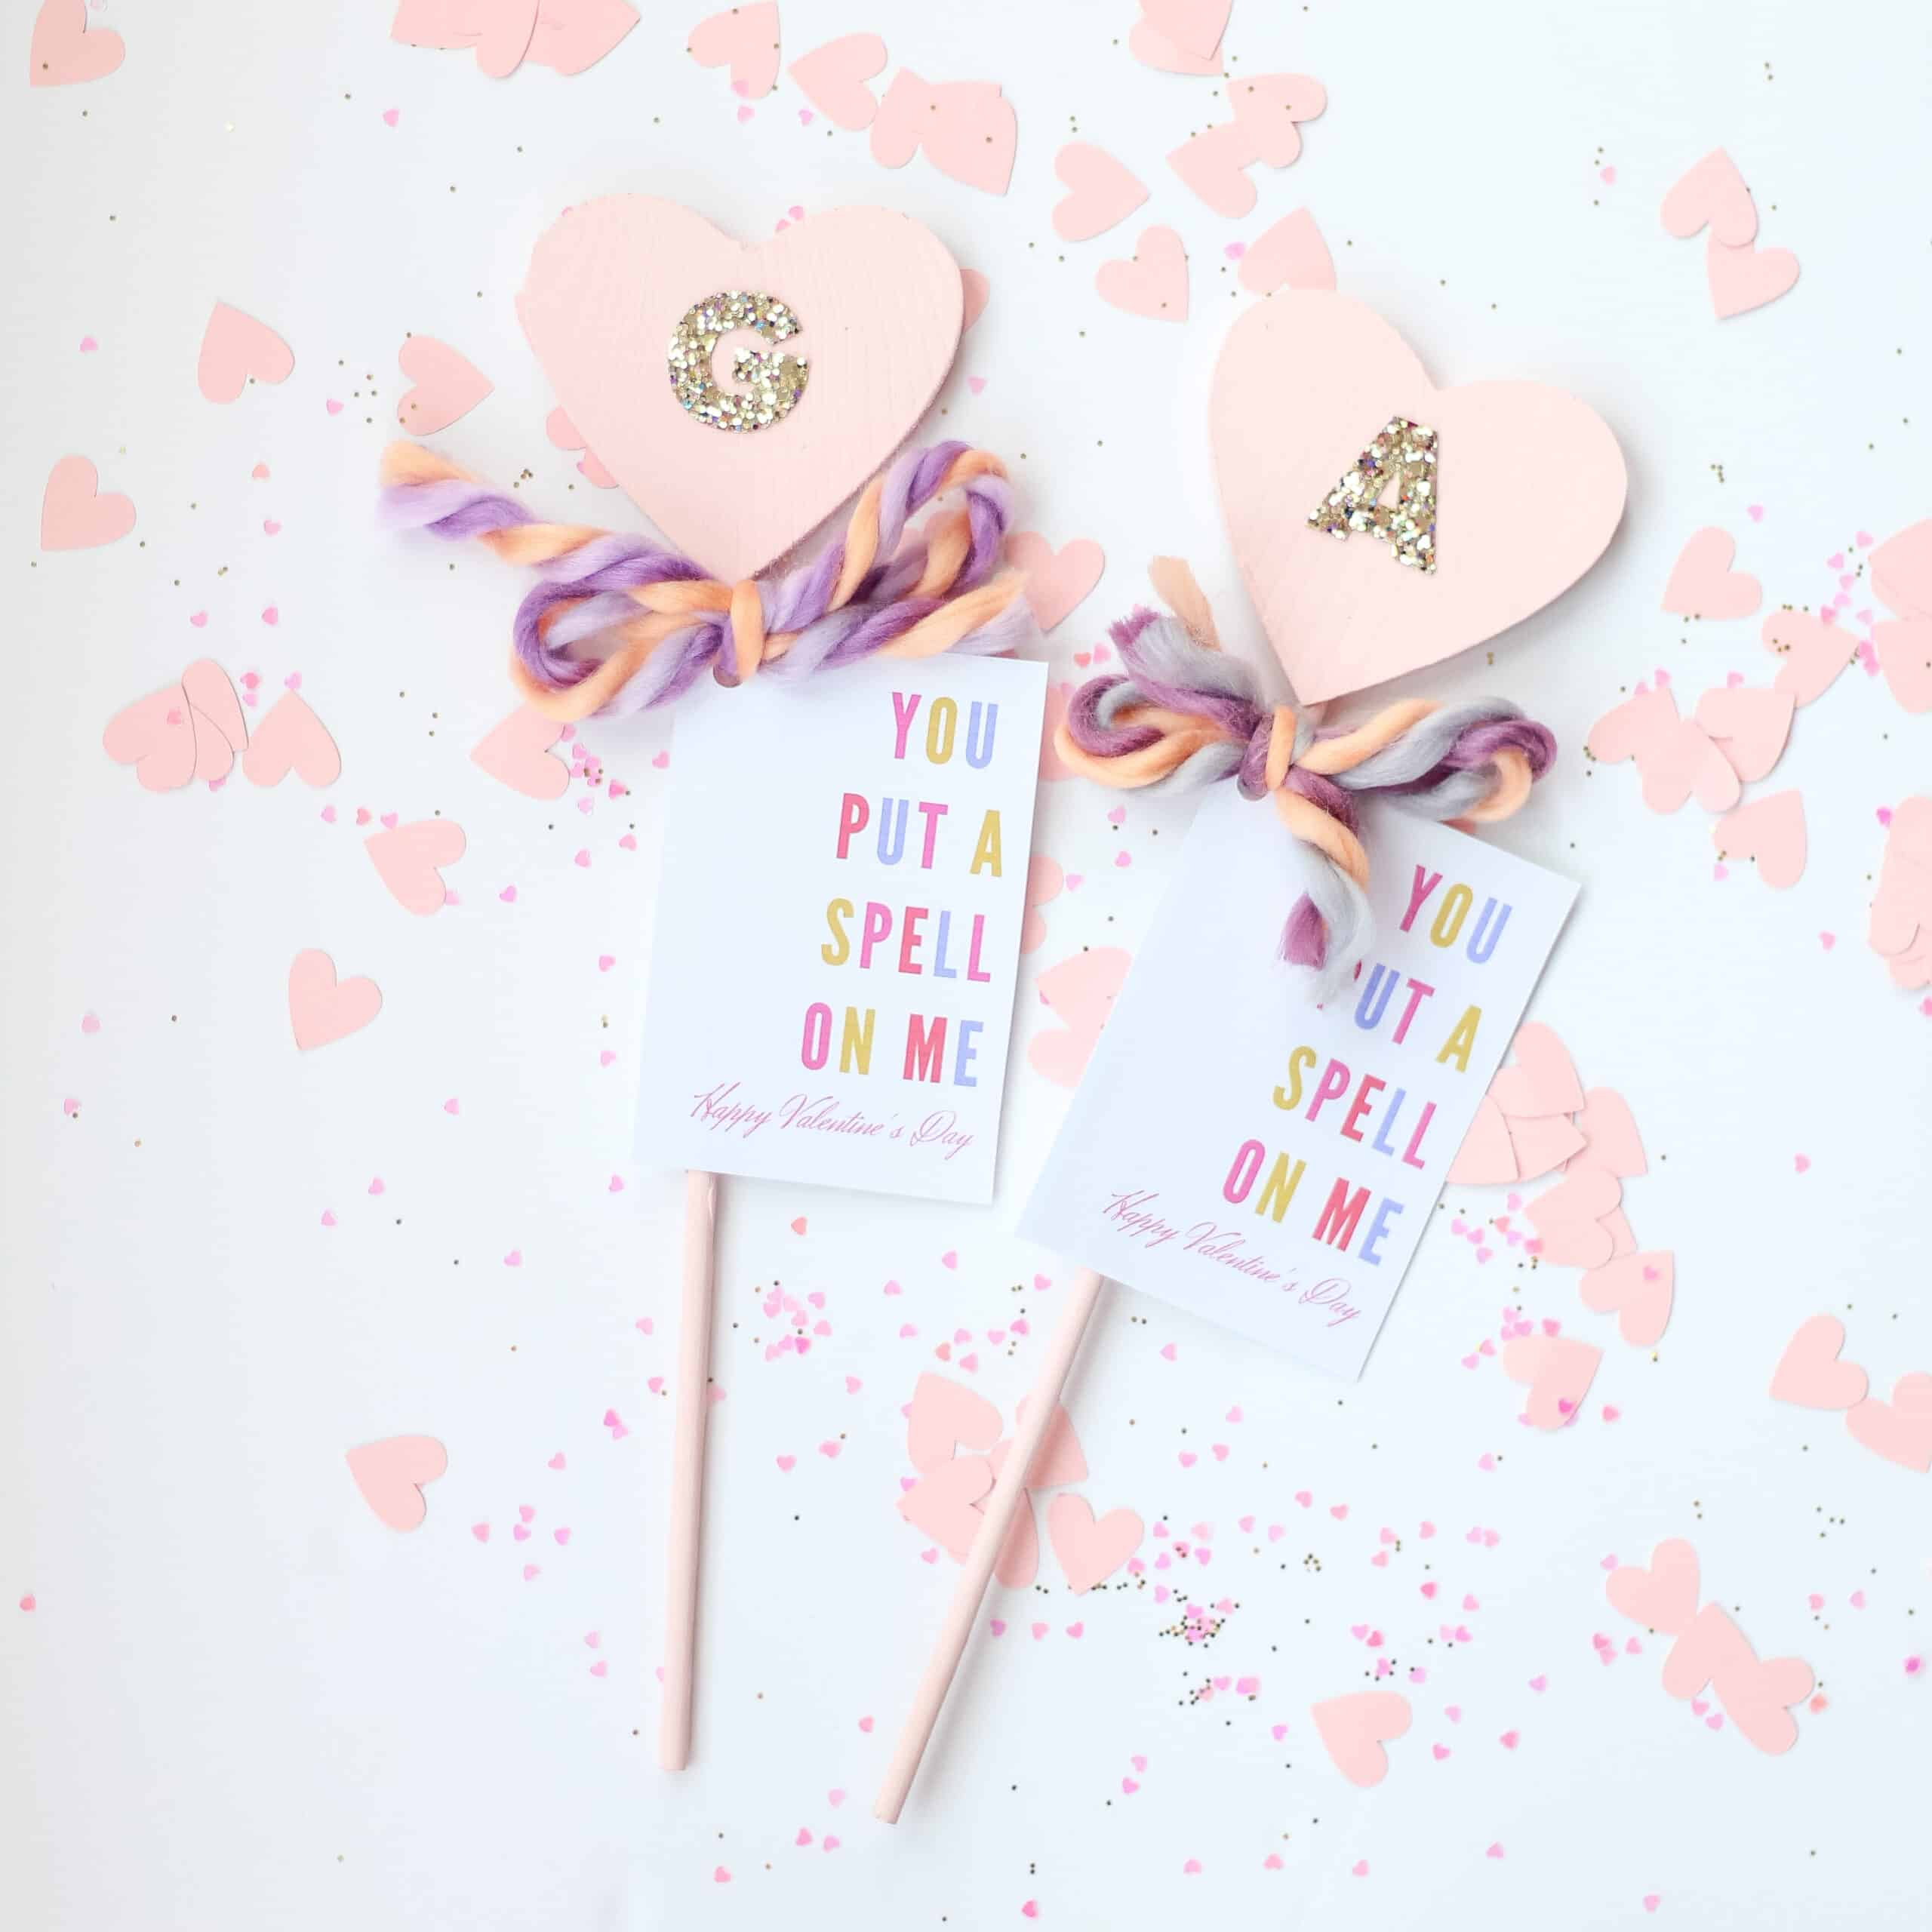 DIY heart wand with valentines